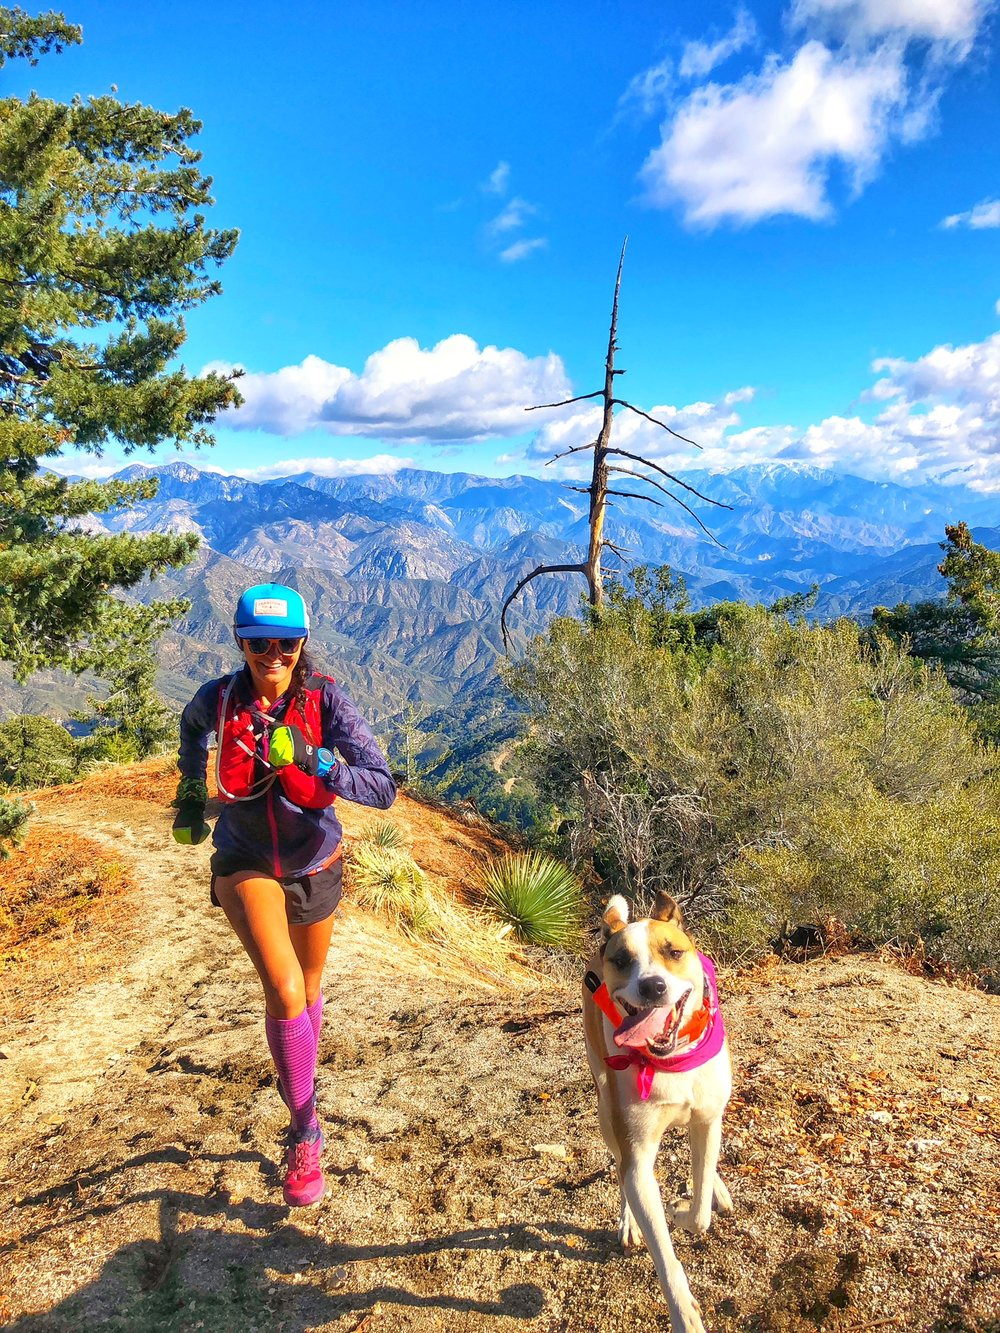 Mt Wilson: - Mt Wilson: Starting from the base at Lizzie's trail Inn or you can opt to start at Chantry Flats. It's a choose your own adventure as the many little trails connect to the main trail. Some favorites are Joan's Peak, Hastings Ridge, Rim Trail).